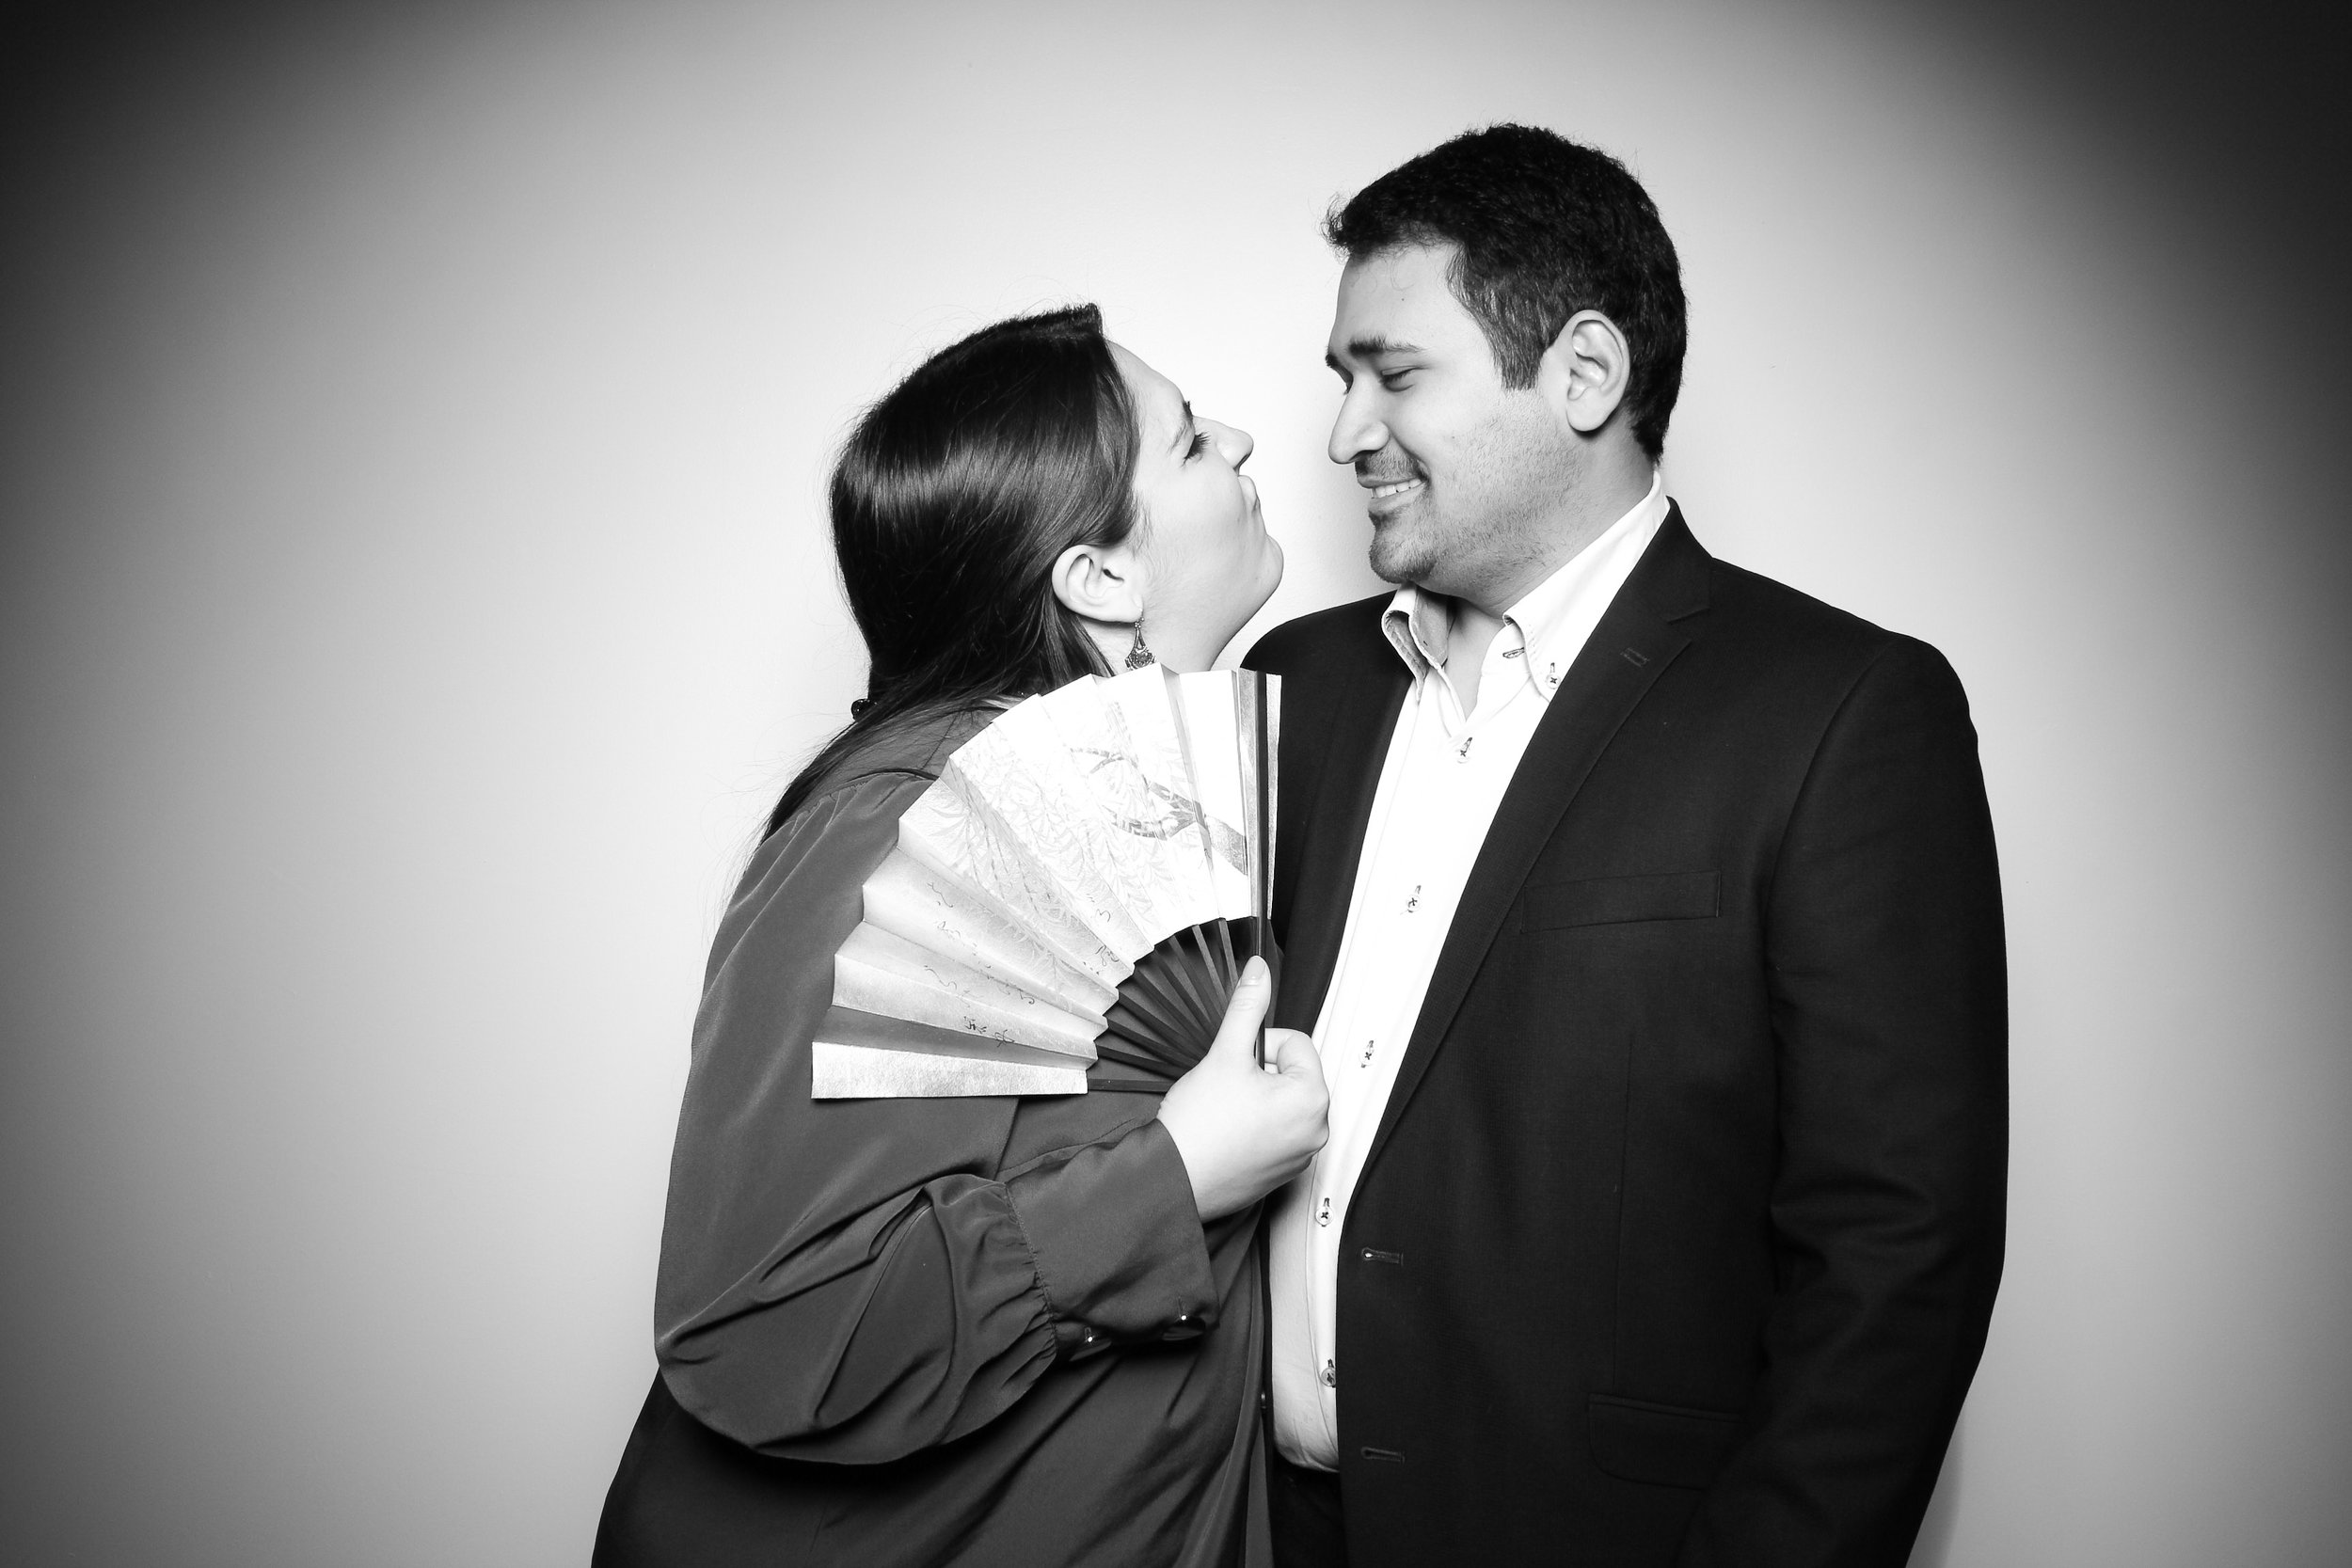 Venue_West_J&L_Catering_Chicago_Photo_Booth_Vitnage__12.jpg